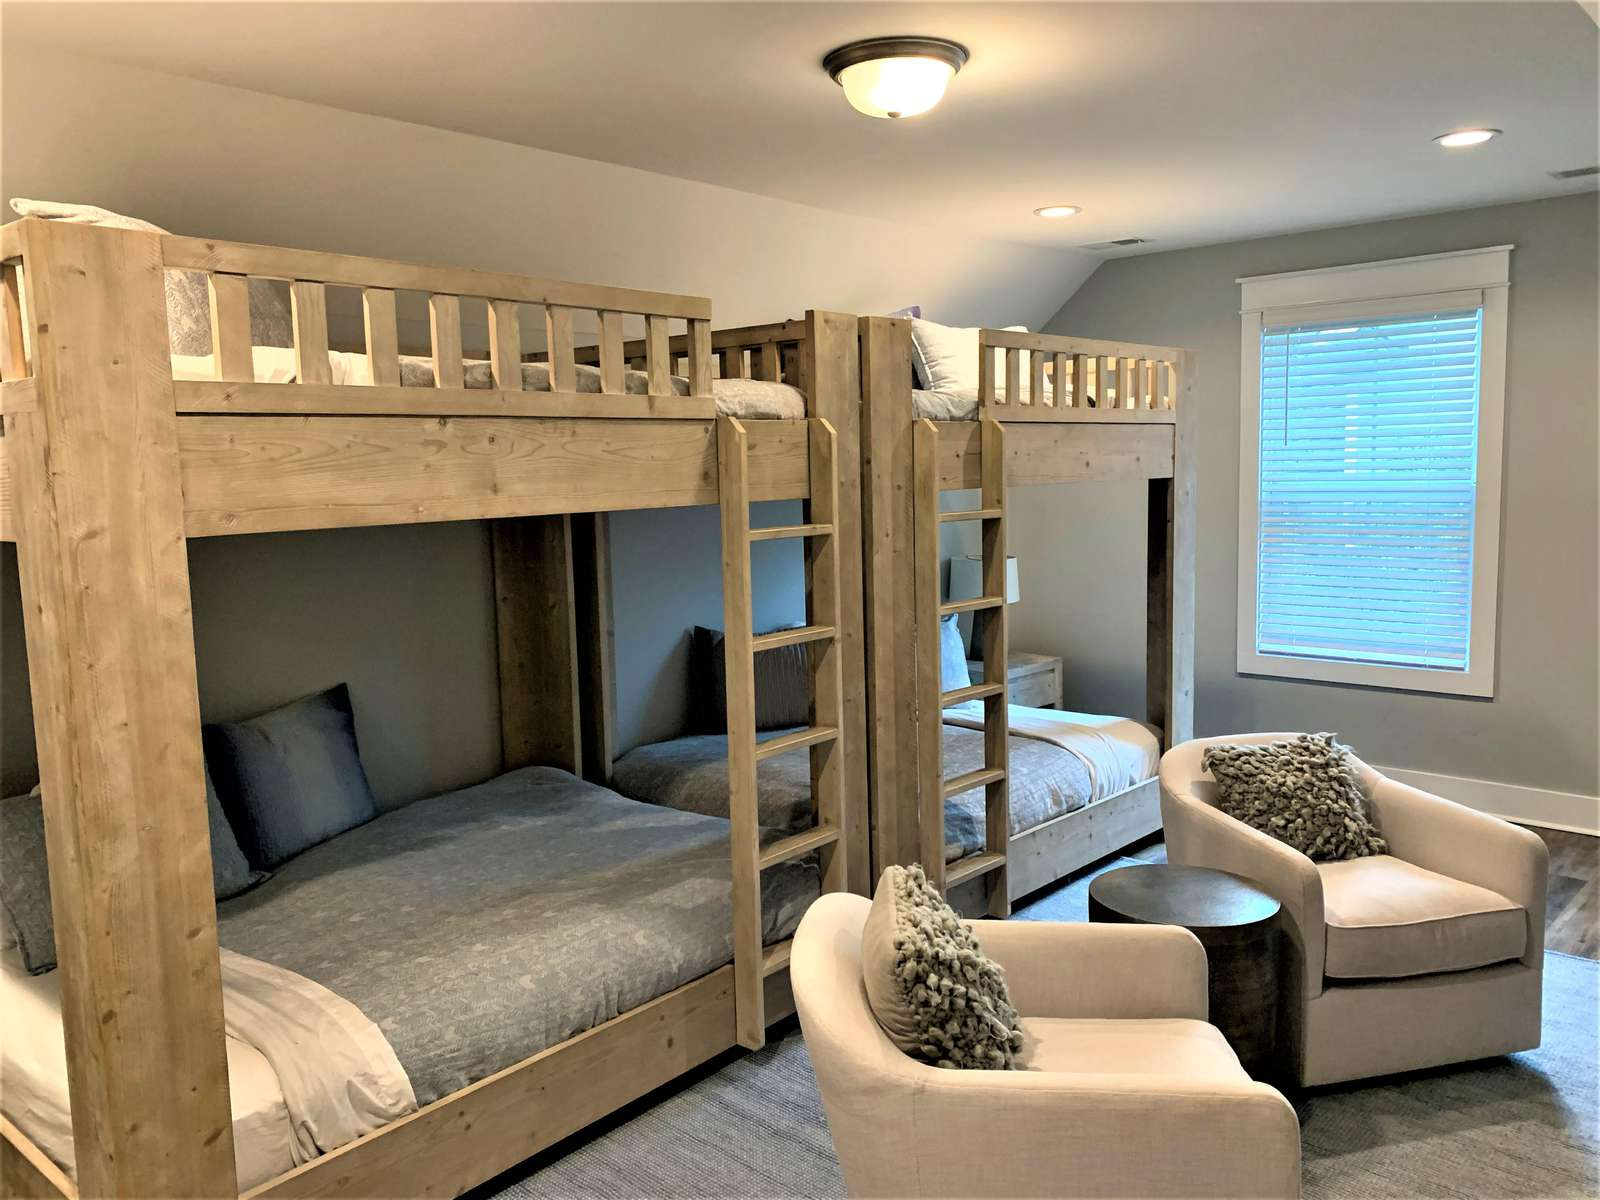 Full Size Bunk Beds can Sleep up to 8